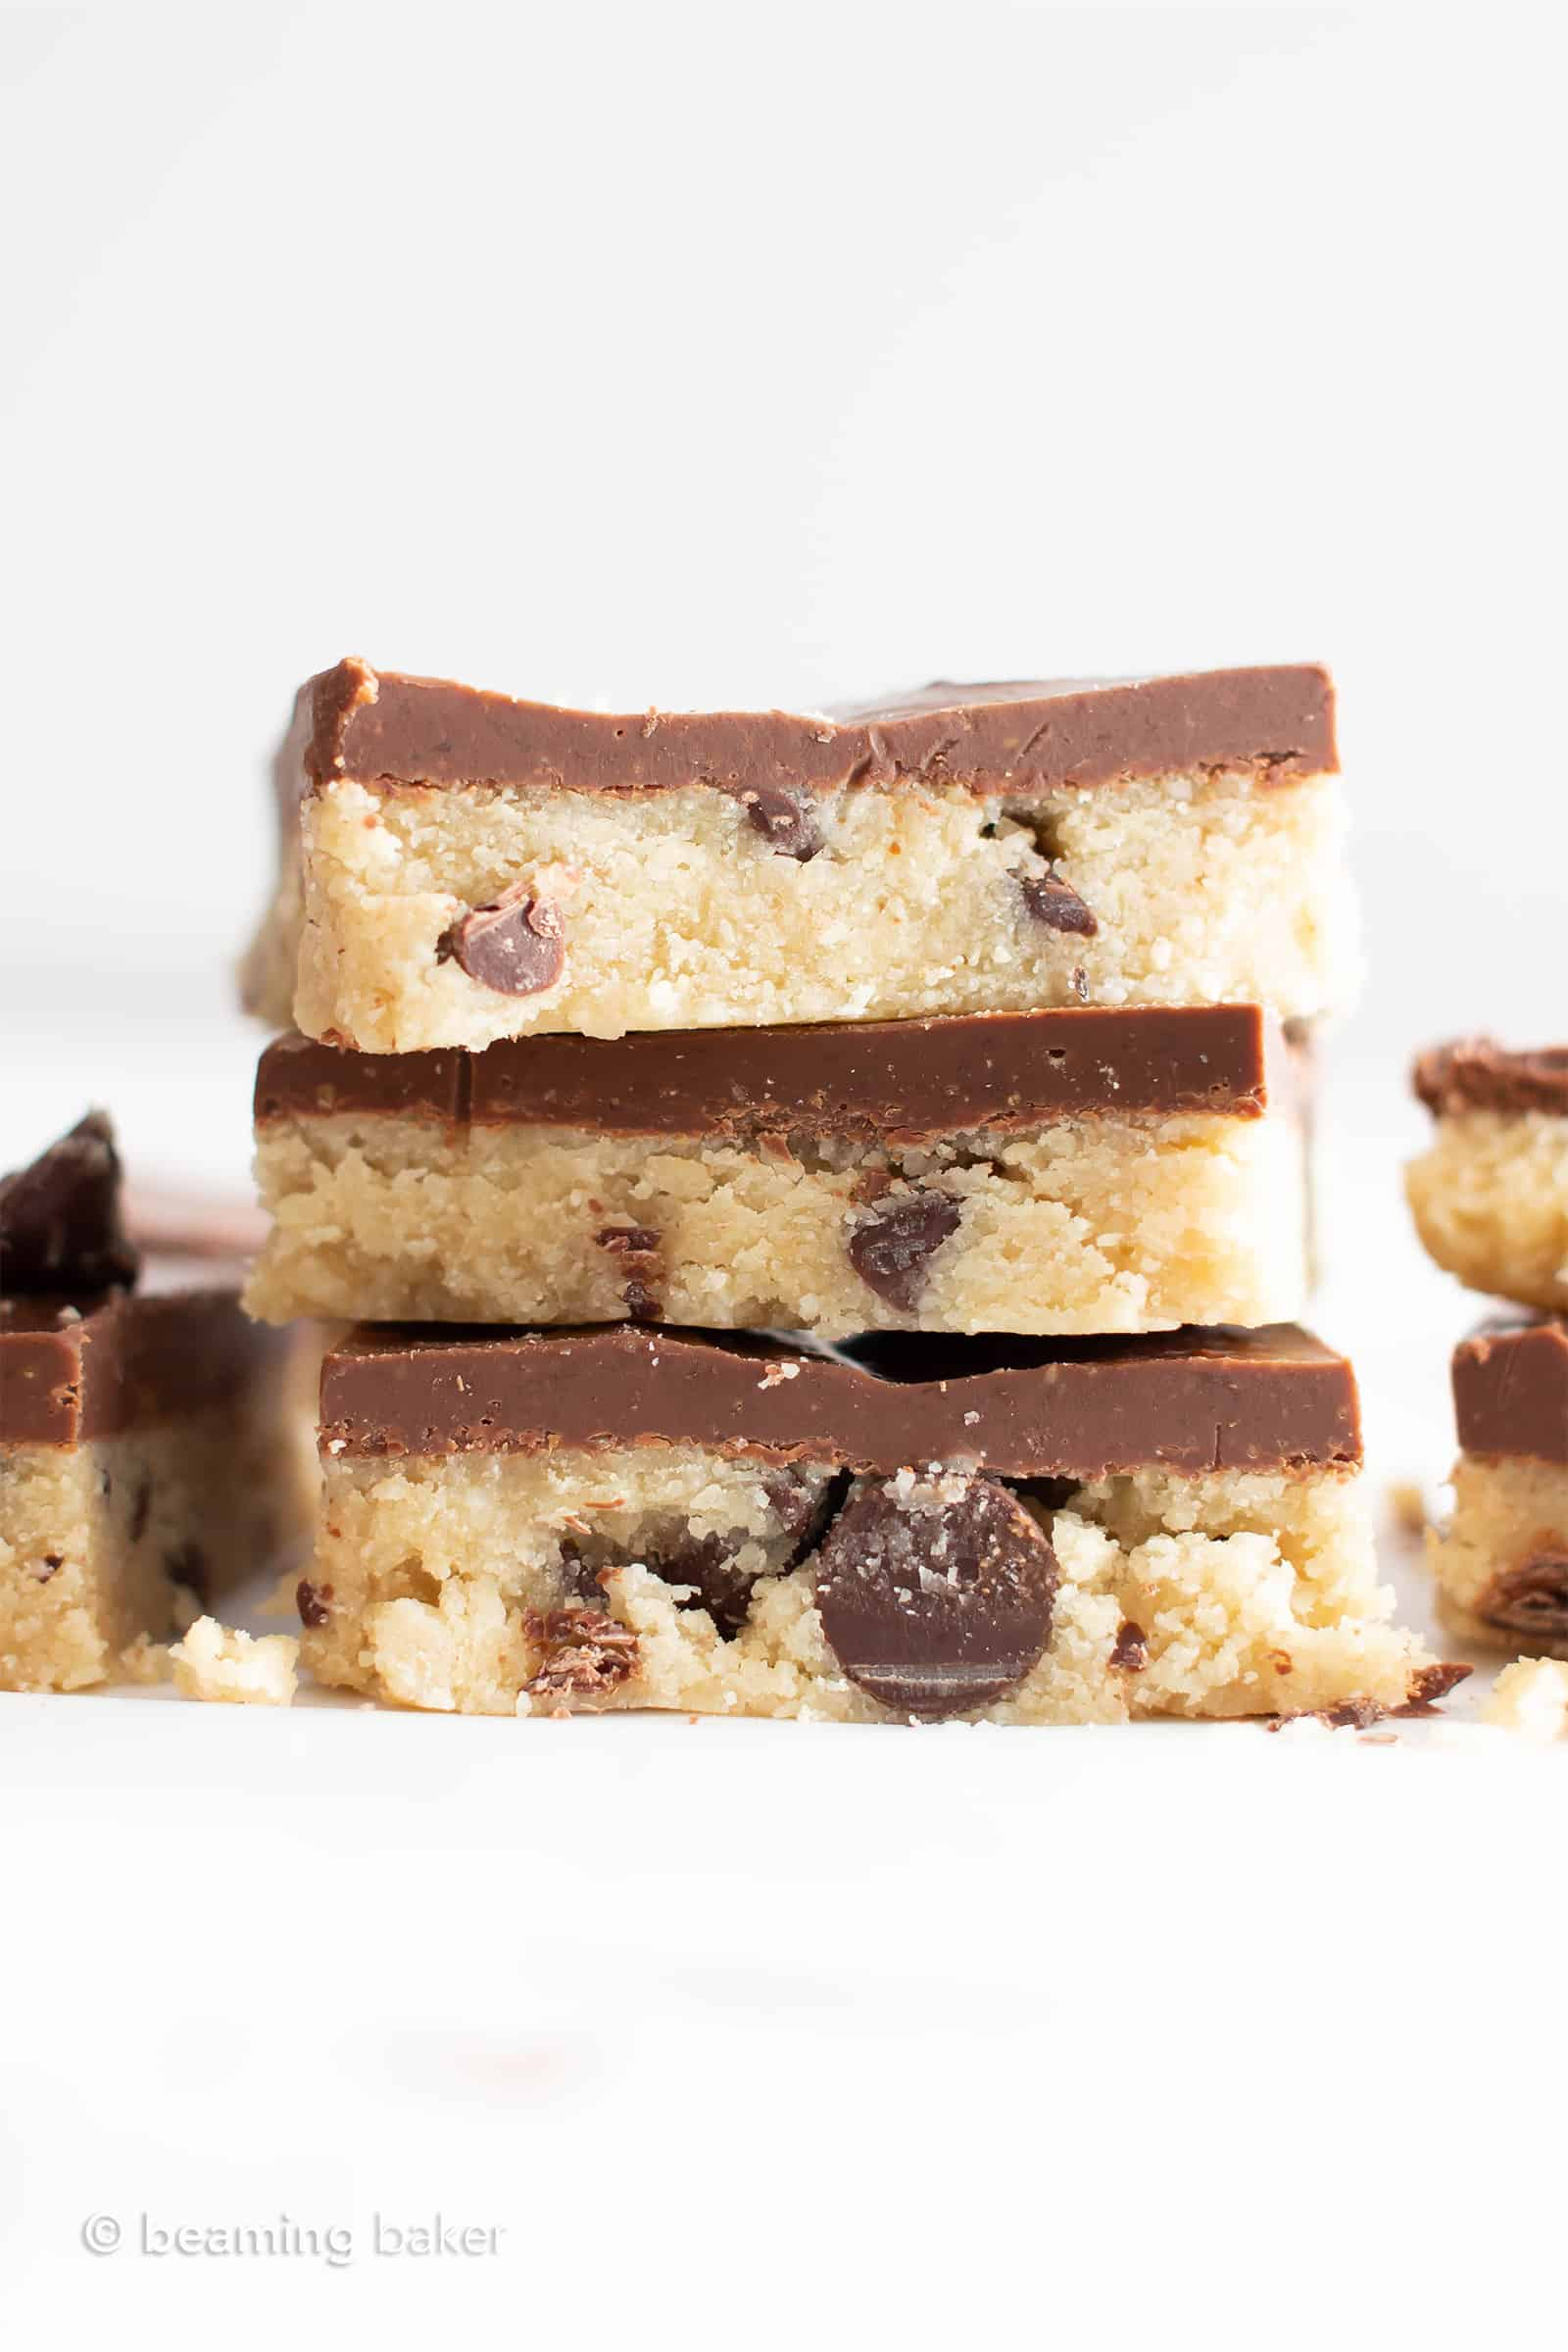 Paleo Cookie Dough Bars (GF): this almond flour cookie dough recipe is delicious & gluten free! Safe to eat & edible, no need to bake. Egg-Free, Vegan, Dairy-Free, Refined Sugar-Free. #Vegan #Paleo #CookieDough #Chocolate | Recipe at BeamingBaker.com